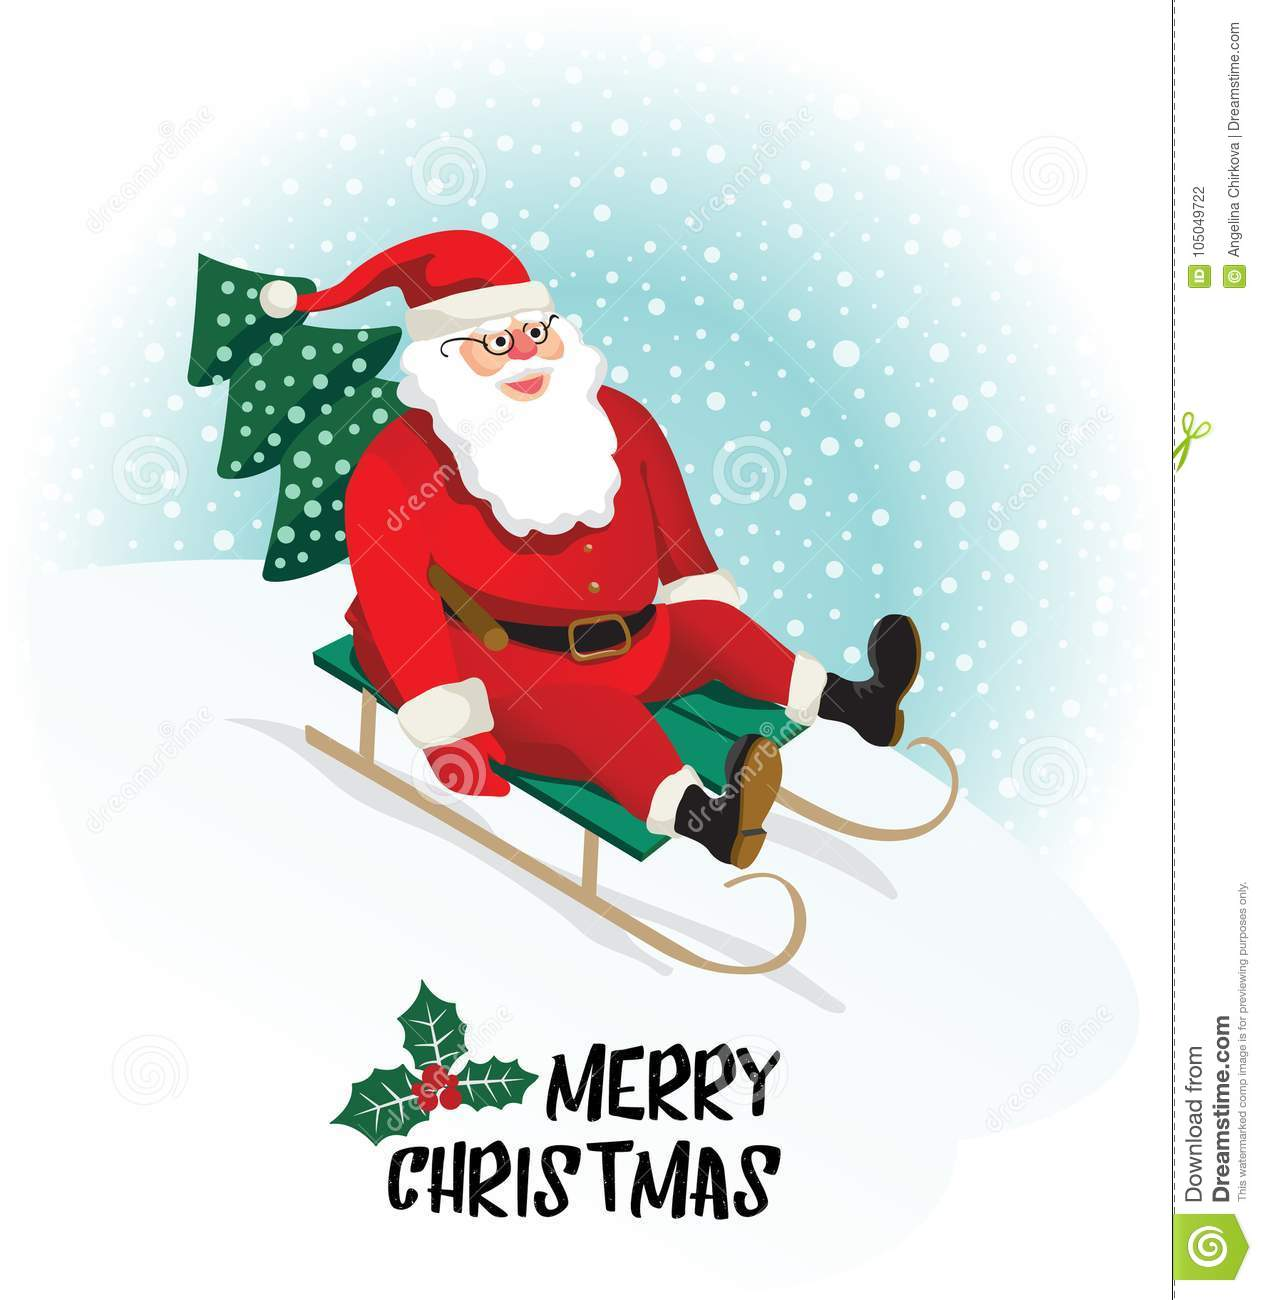 Santa claus gives gifts on sledging vector illustration stock santa claus gives gifts on sledging greeting card vector illustration m4hsunfo